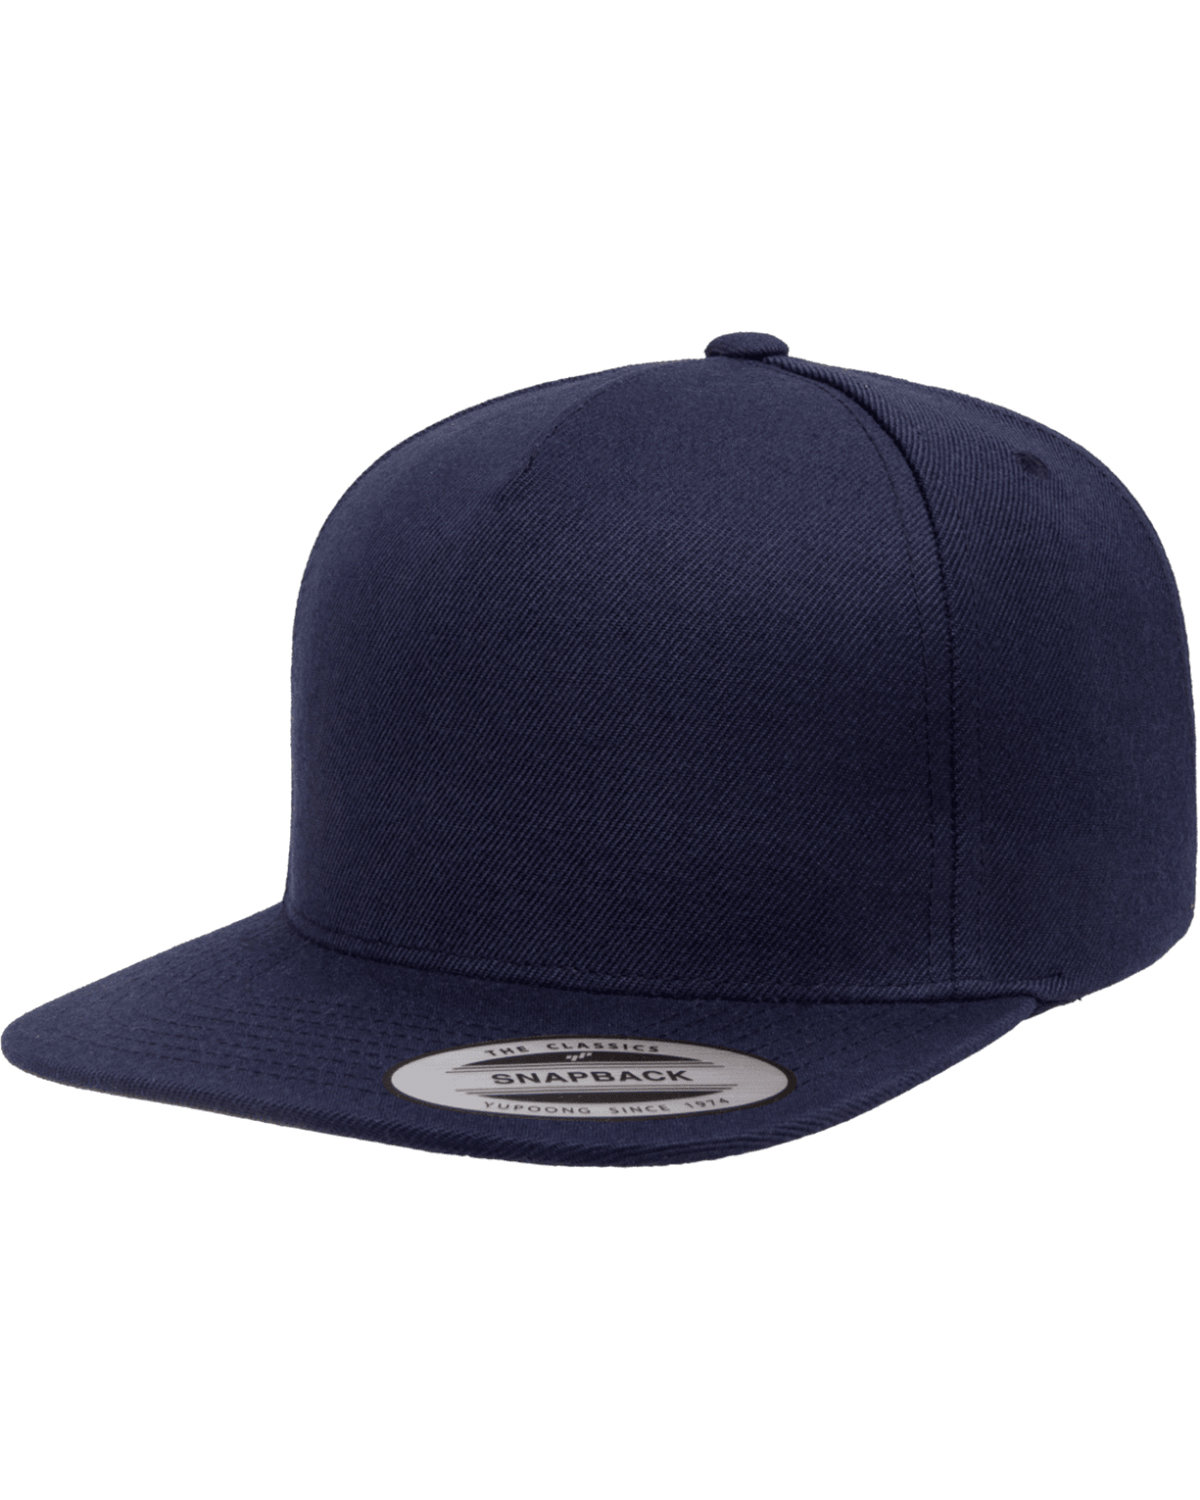 Yupoong Adult 5-Panel Structured Flat Visor Classic Snapback Cap NAVY